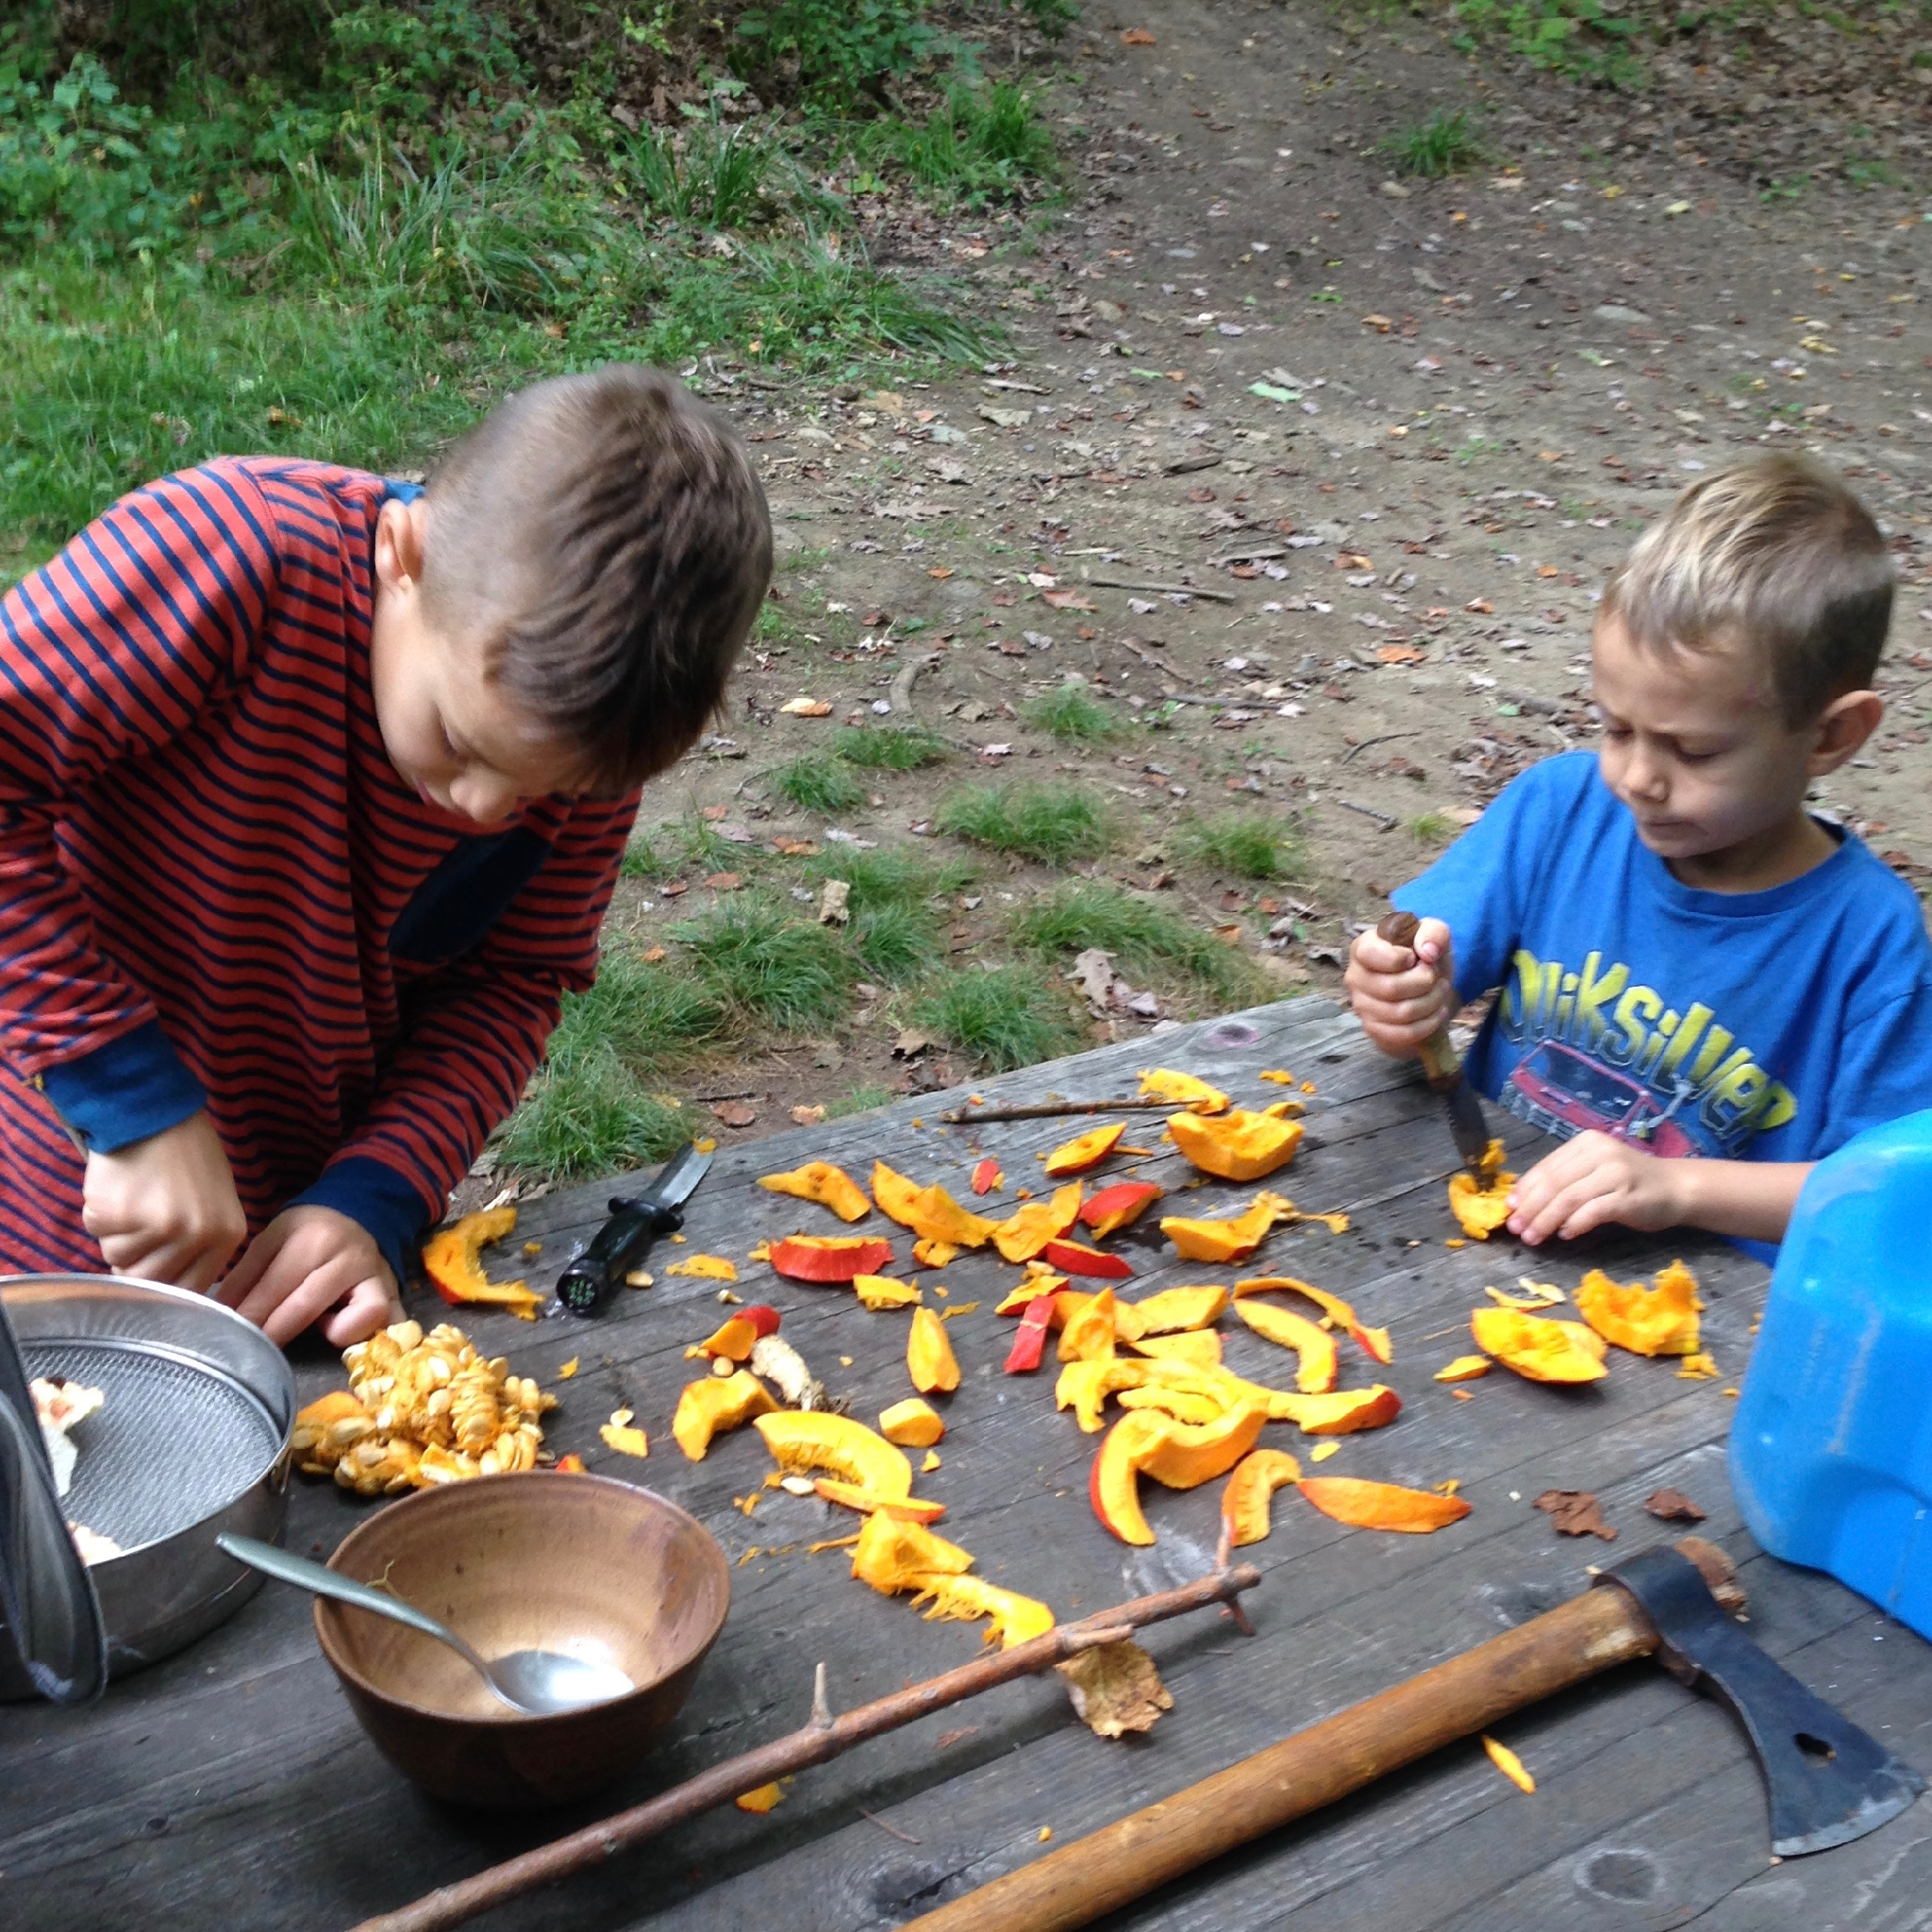 Preparing an uchiki curi squash from the Three Sisters Garden for sun drying on a string. The work went faster after the boys made up an uchiki curi chant.